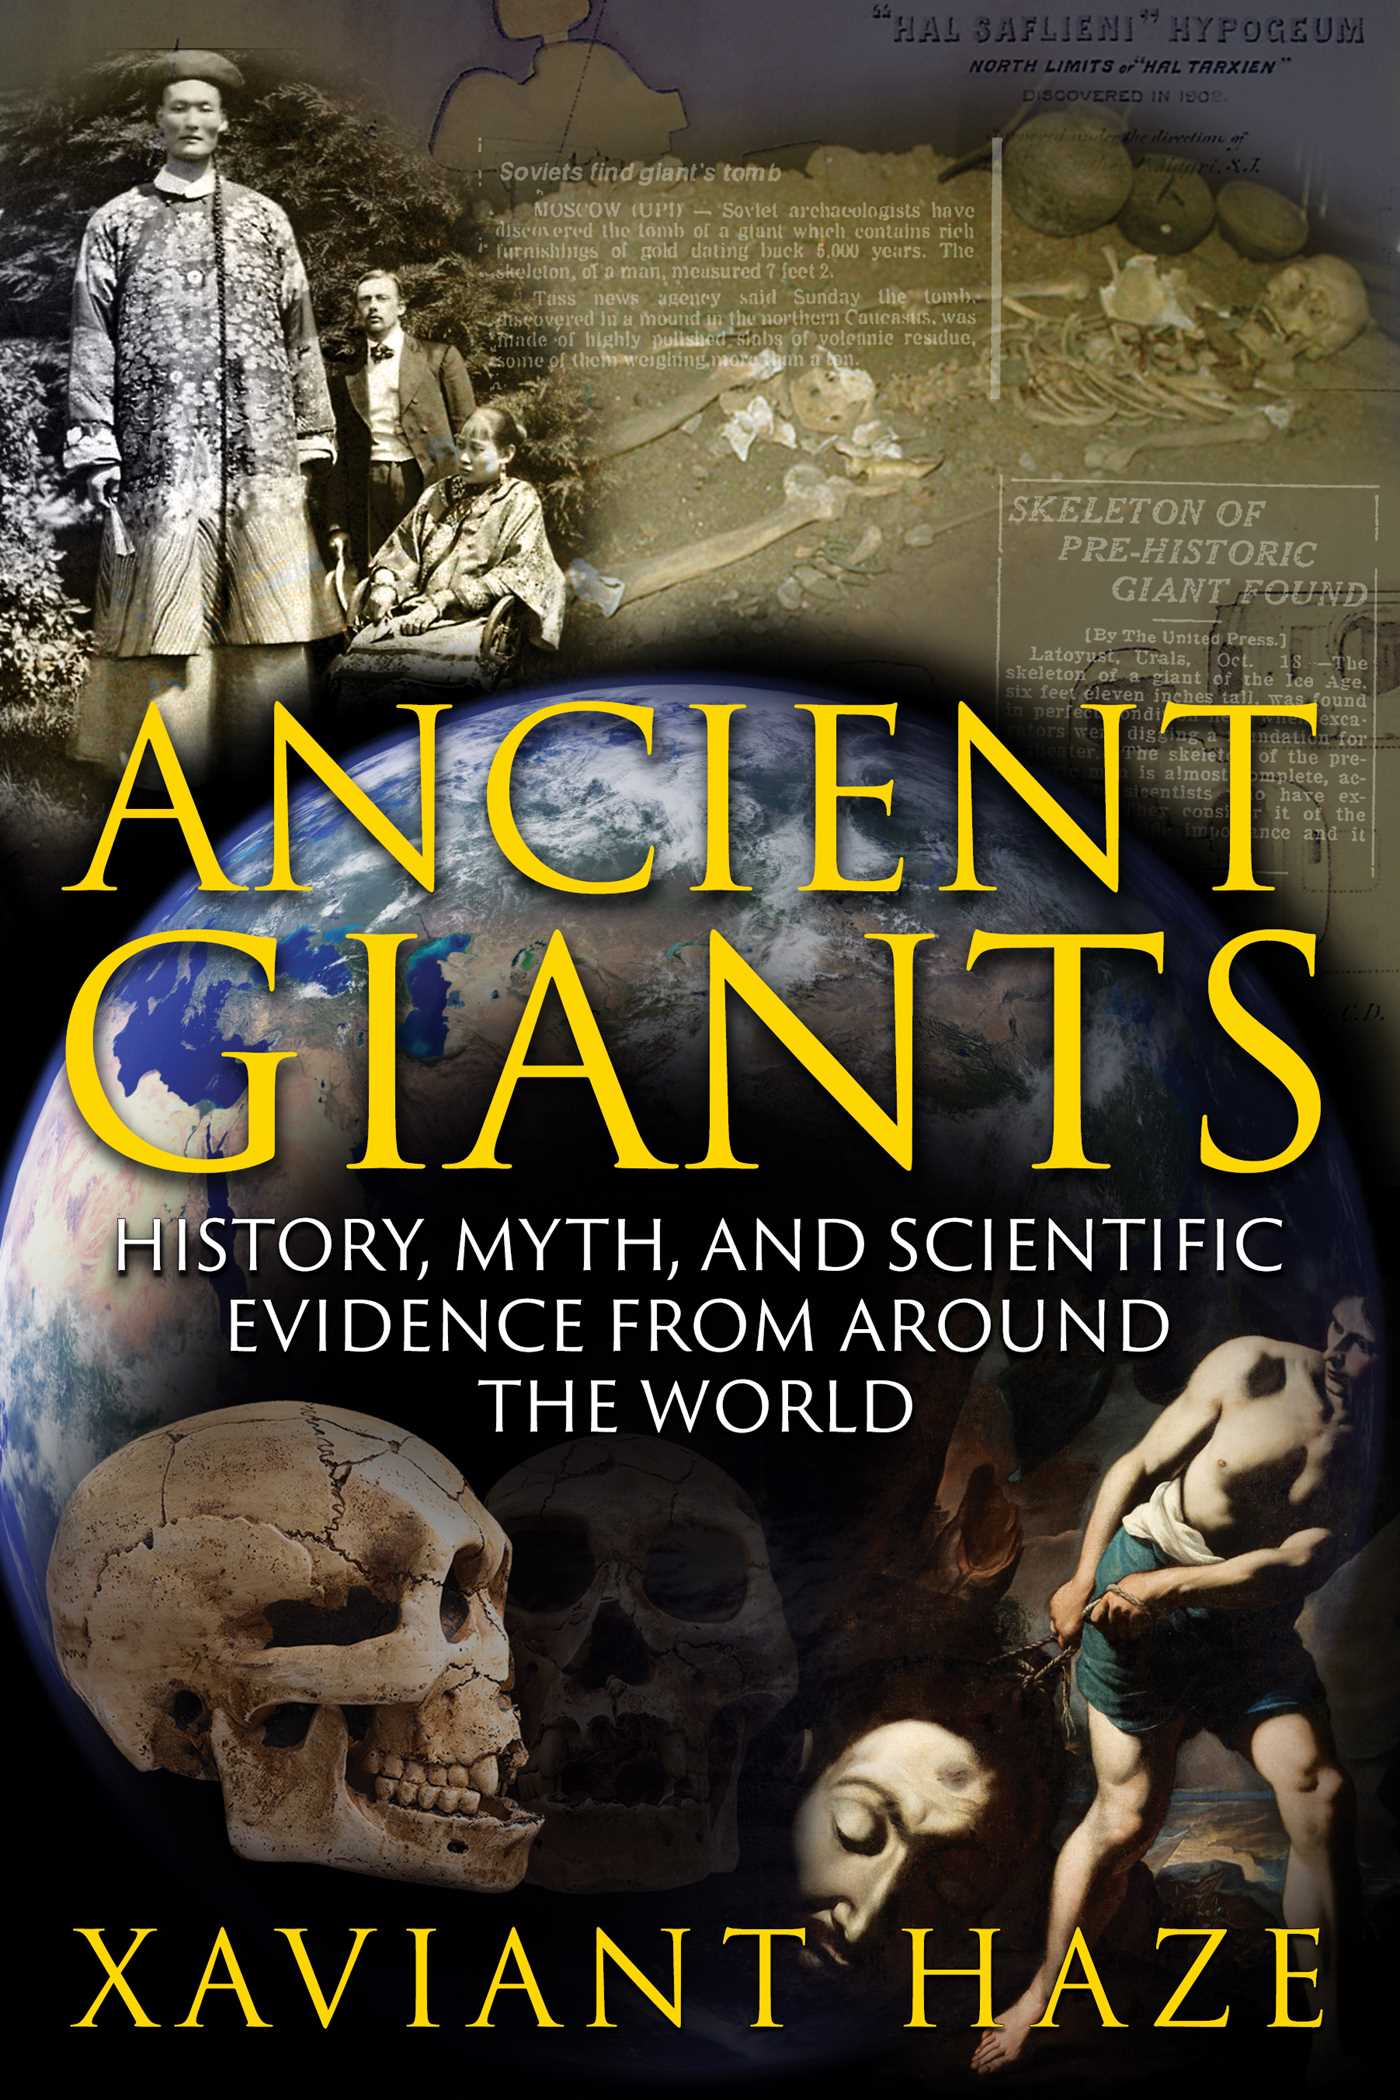 Ancient giants 9781591432937 hr